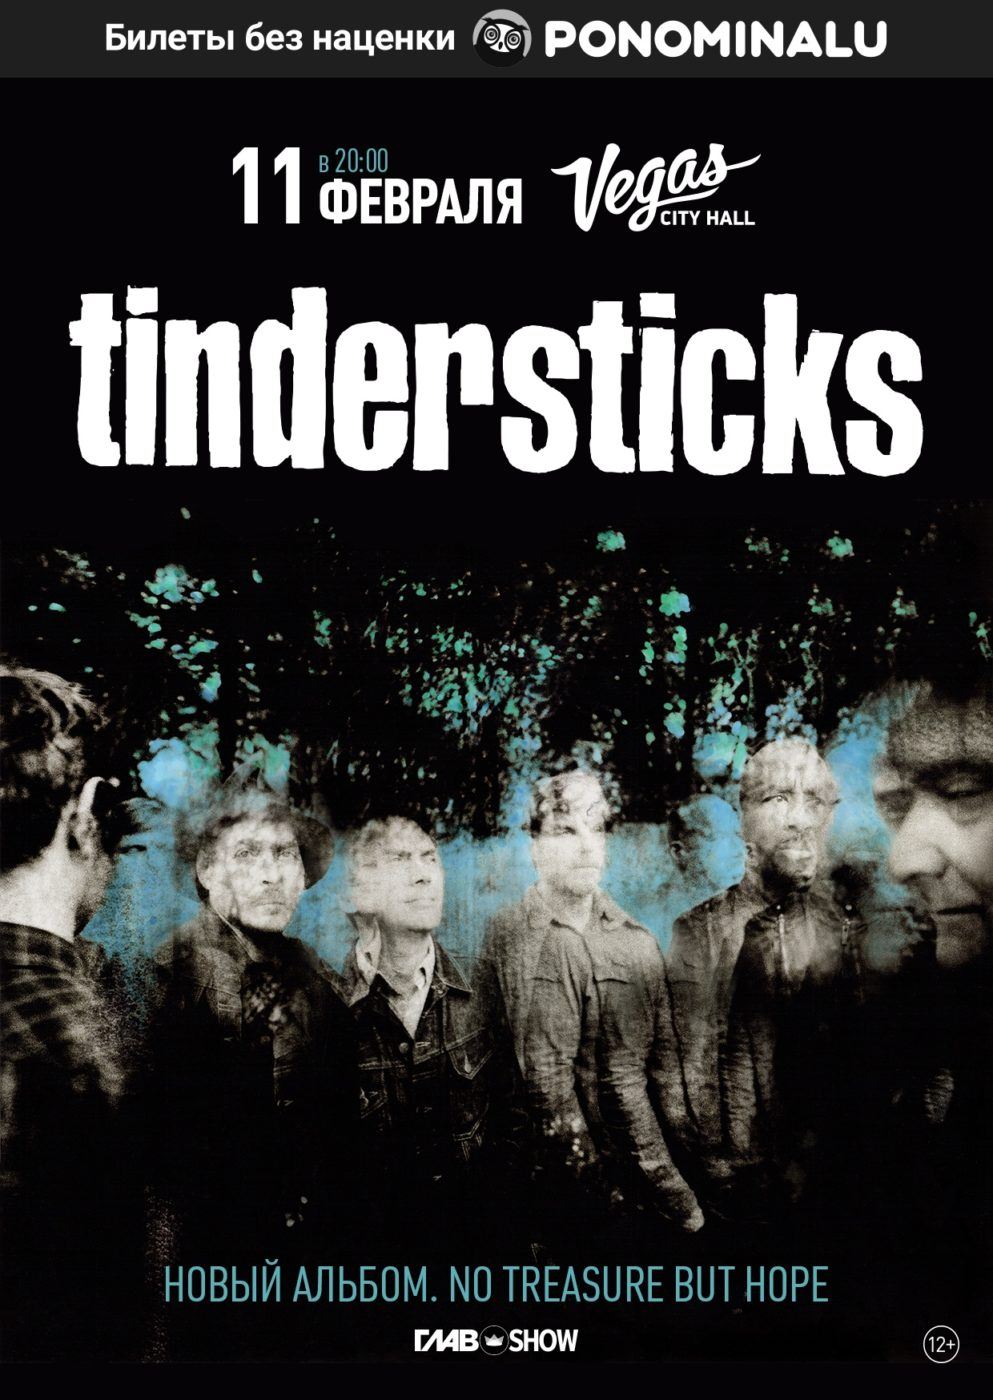 Tindersticks Vegas City Hall 11.02.20